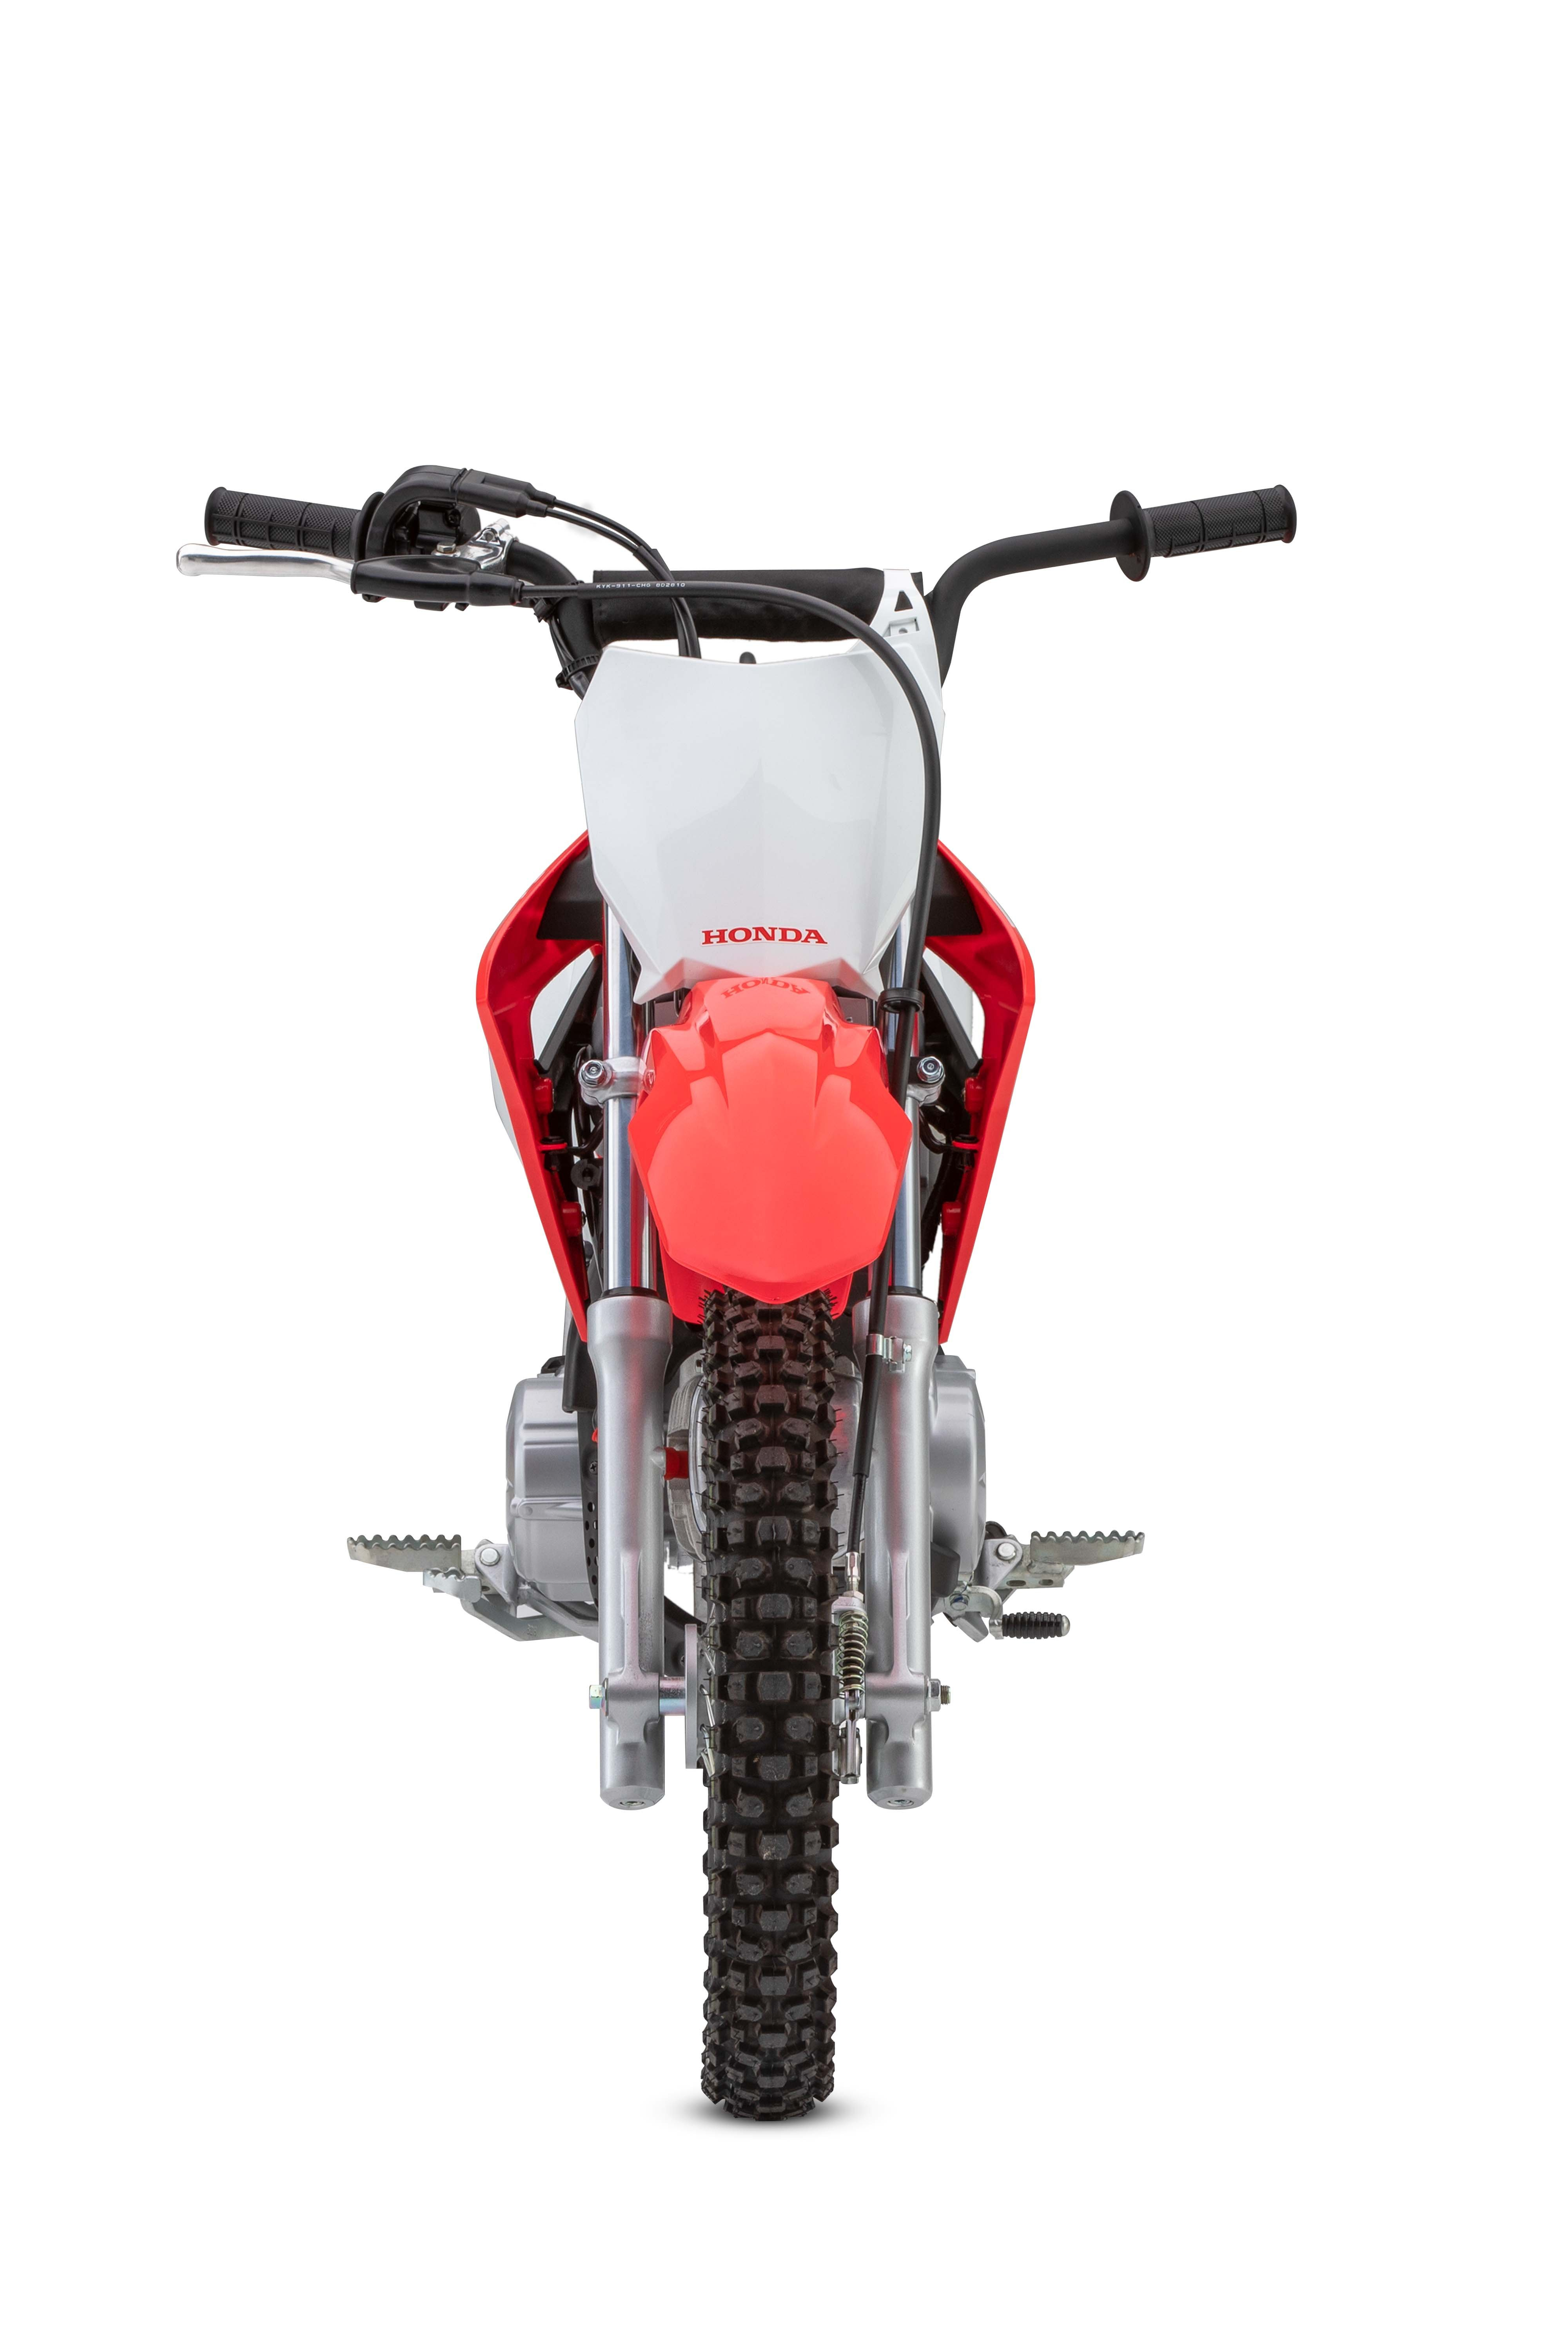 Front Mudguard Red For Honda CRF 110 F 2013-2016